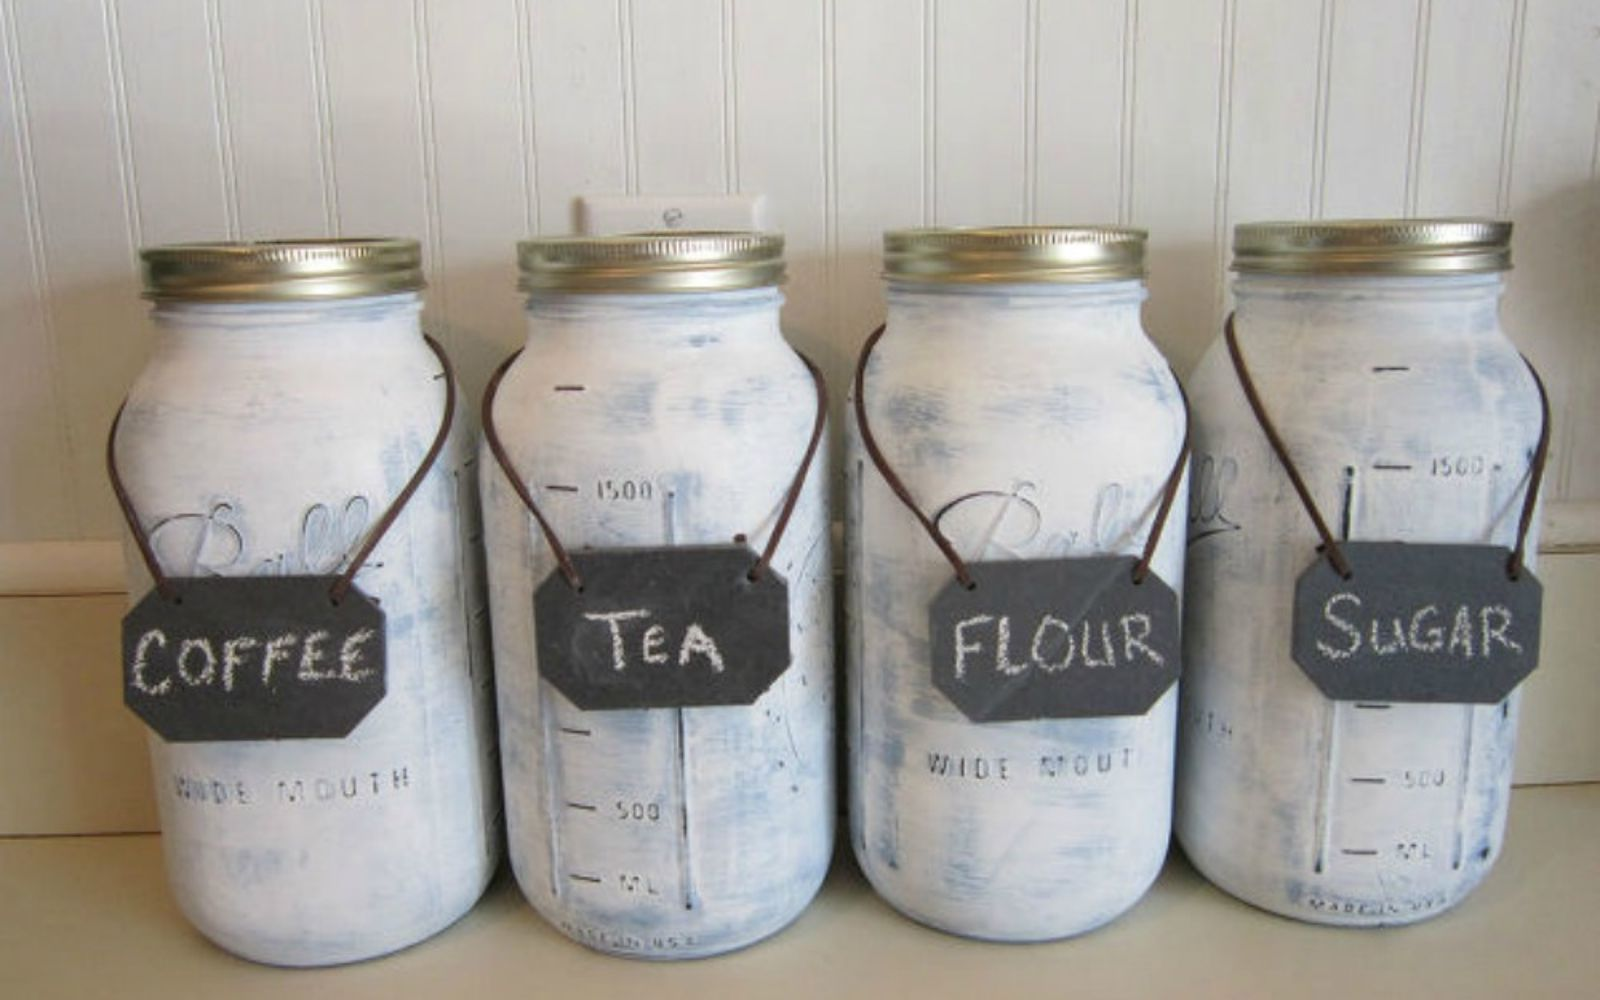 s get rid of kitchen countertop clutter with 13 clever mason jar ideas, countertops, kitchen design, mason jars, organizing, Make pretty containers for your coffee